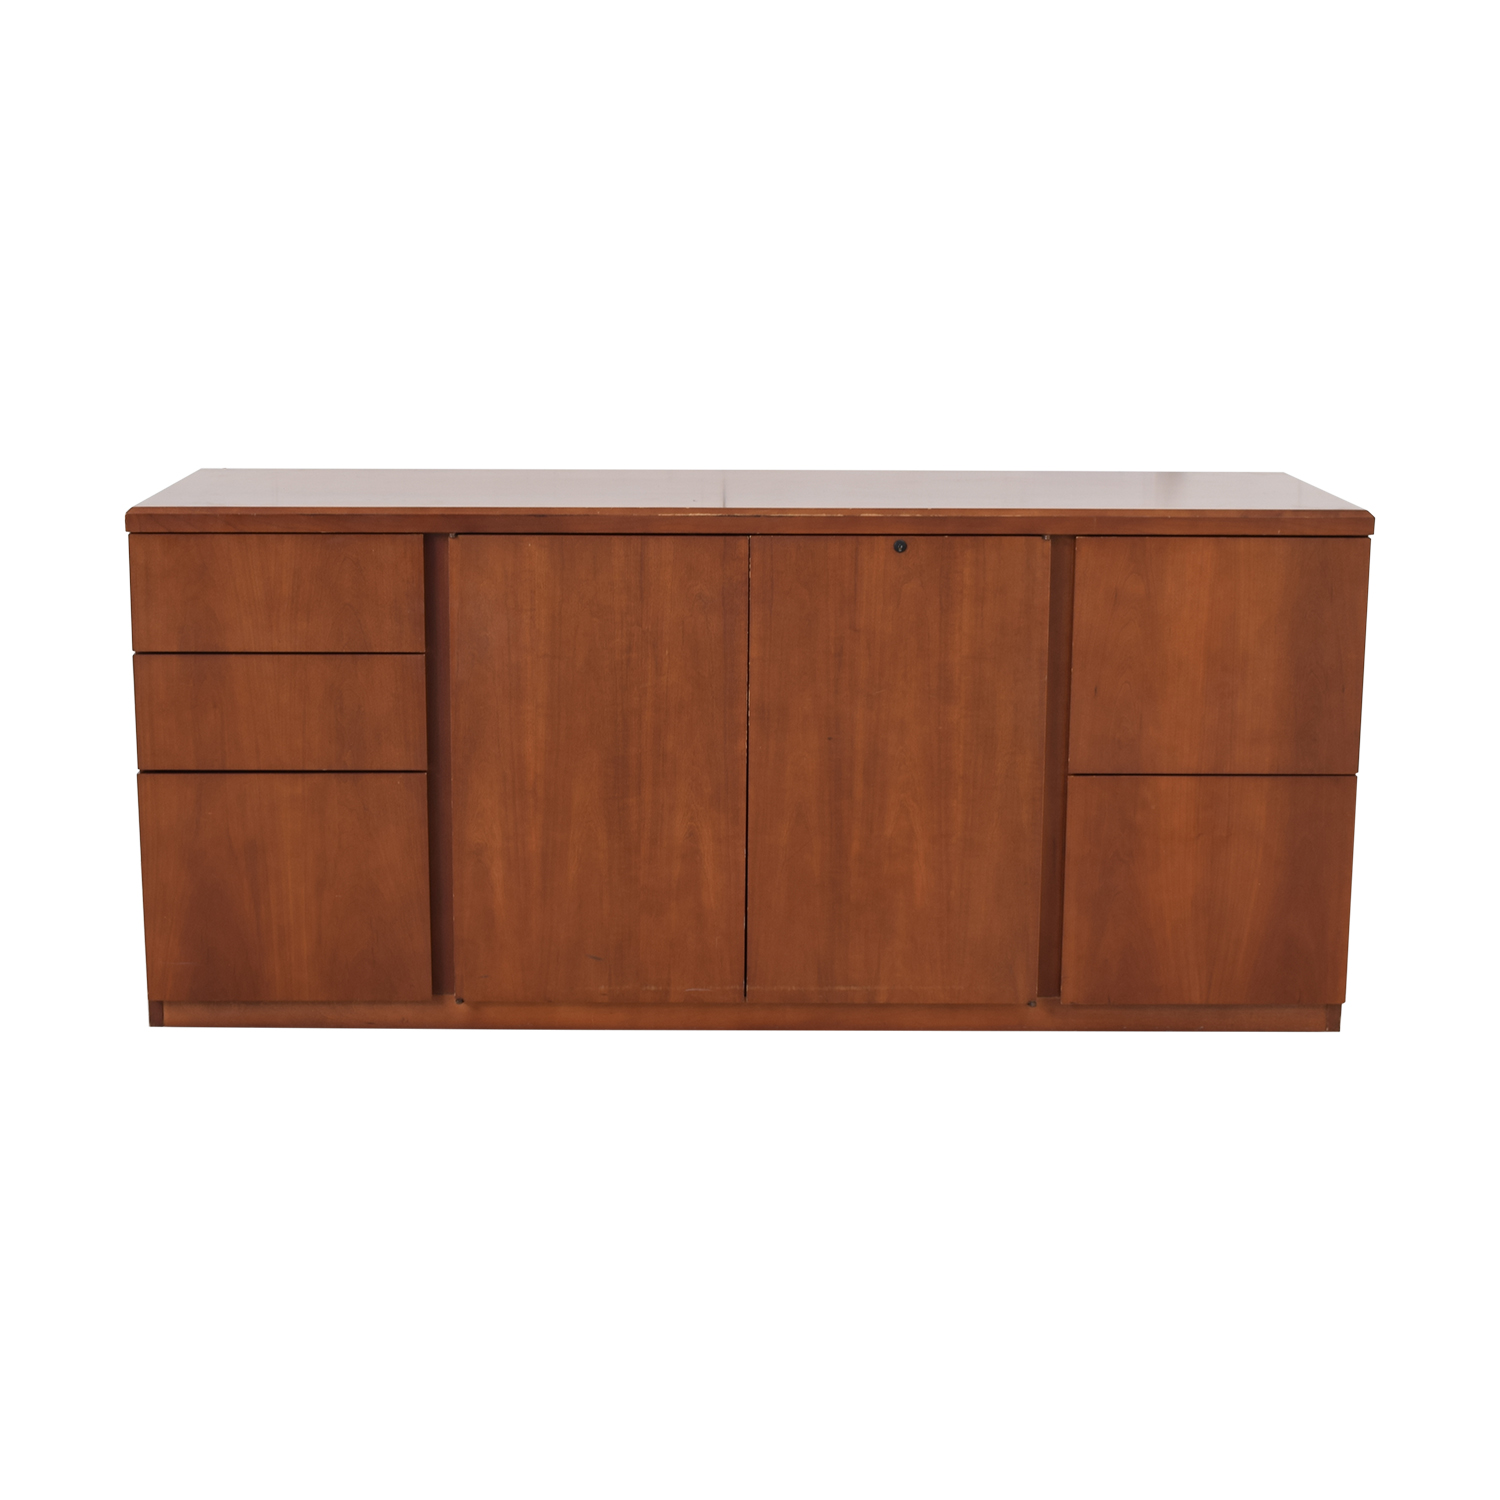 Gunlocke Company Five Drawer Wood Credenza sale